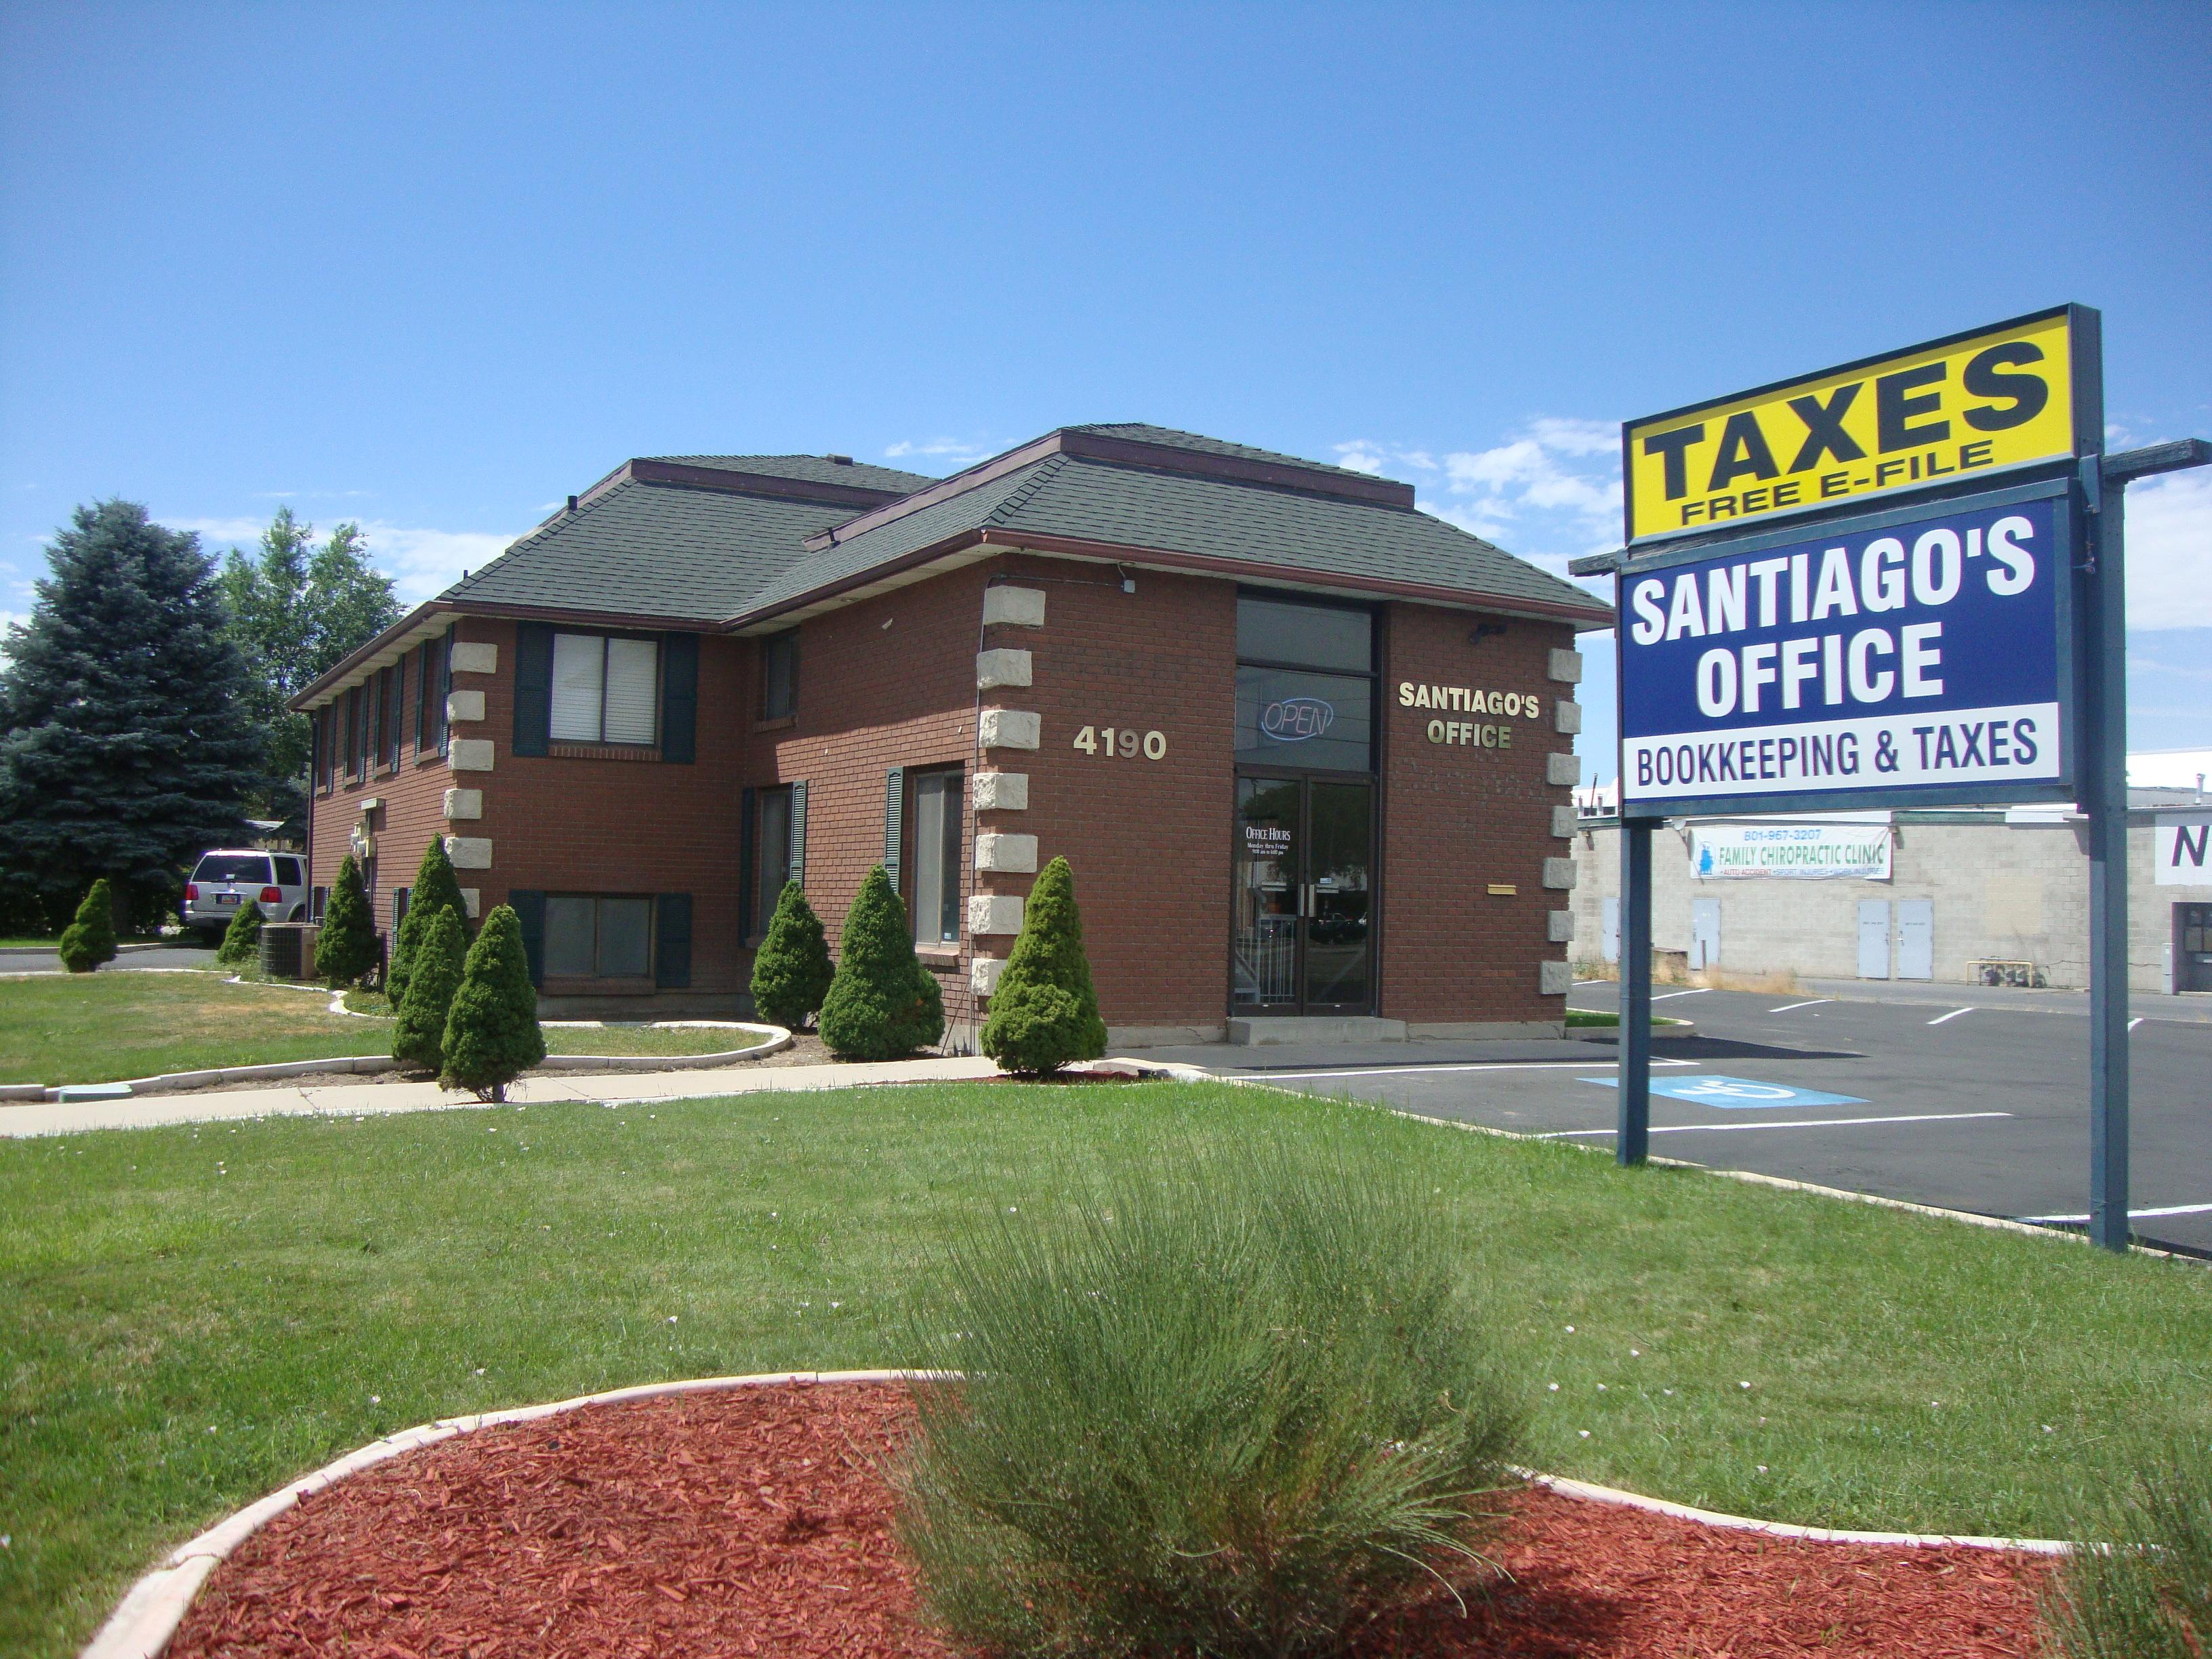 Santiago's Office Bookkeeping and Taxes - ad image